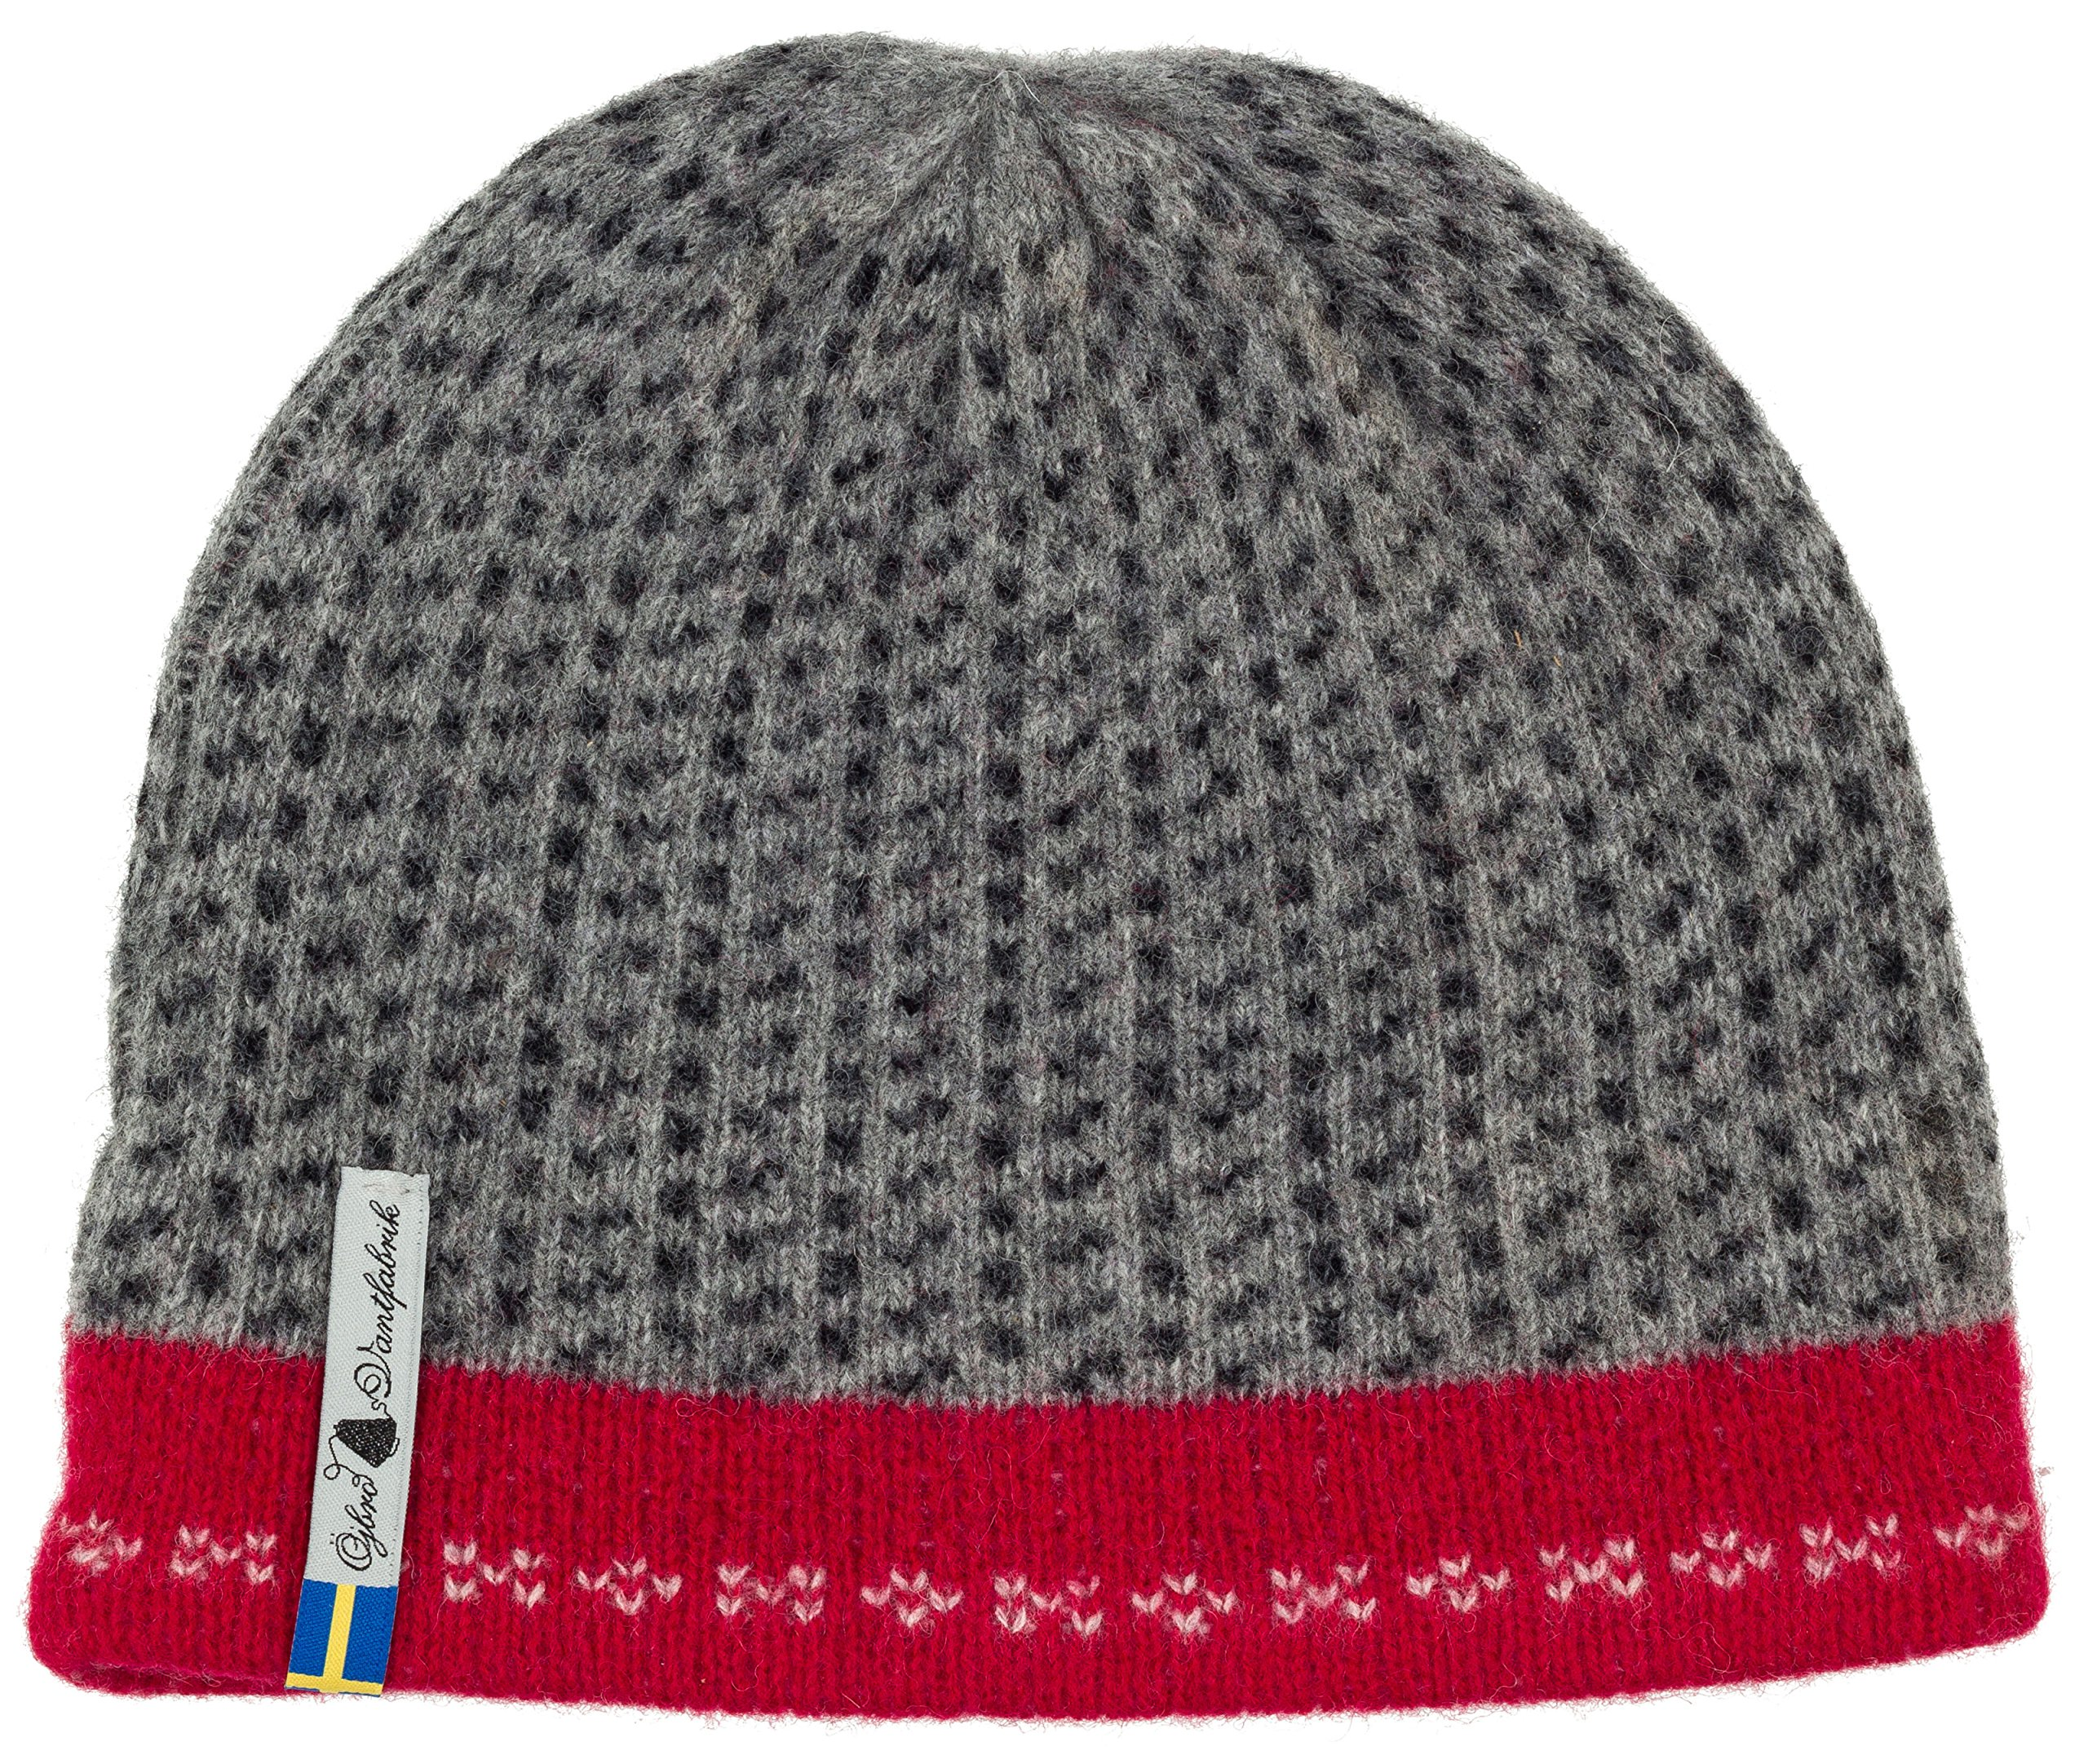 Swedish 100% Merino Wool Warm Soft and Thick Beanie Hat Cap (Skaftö Grå)